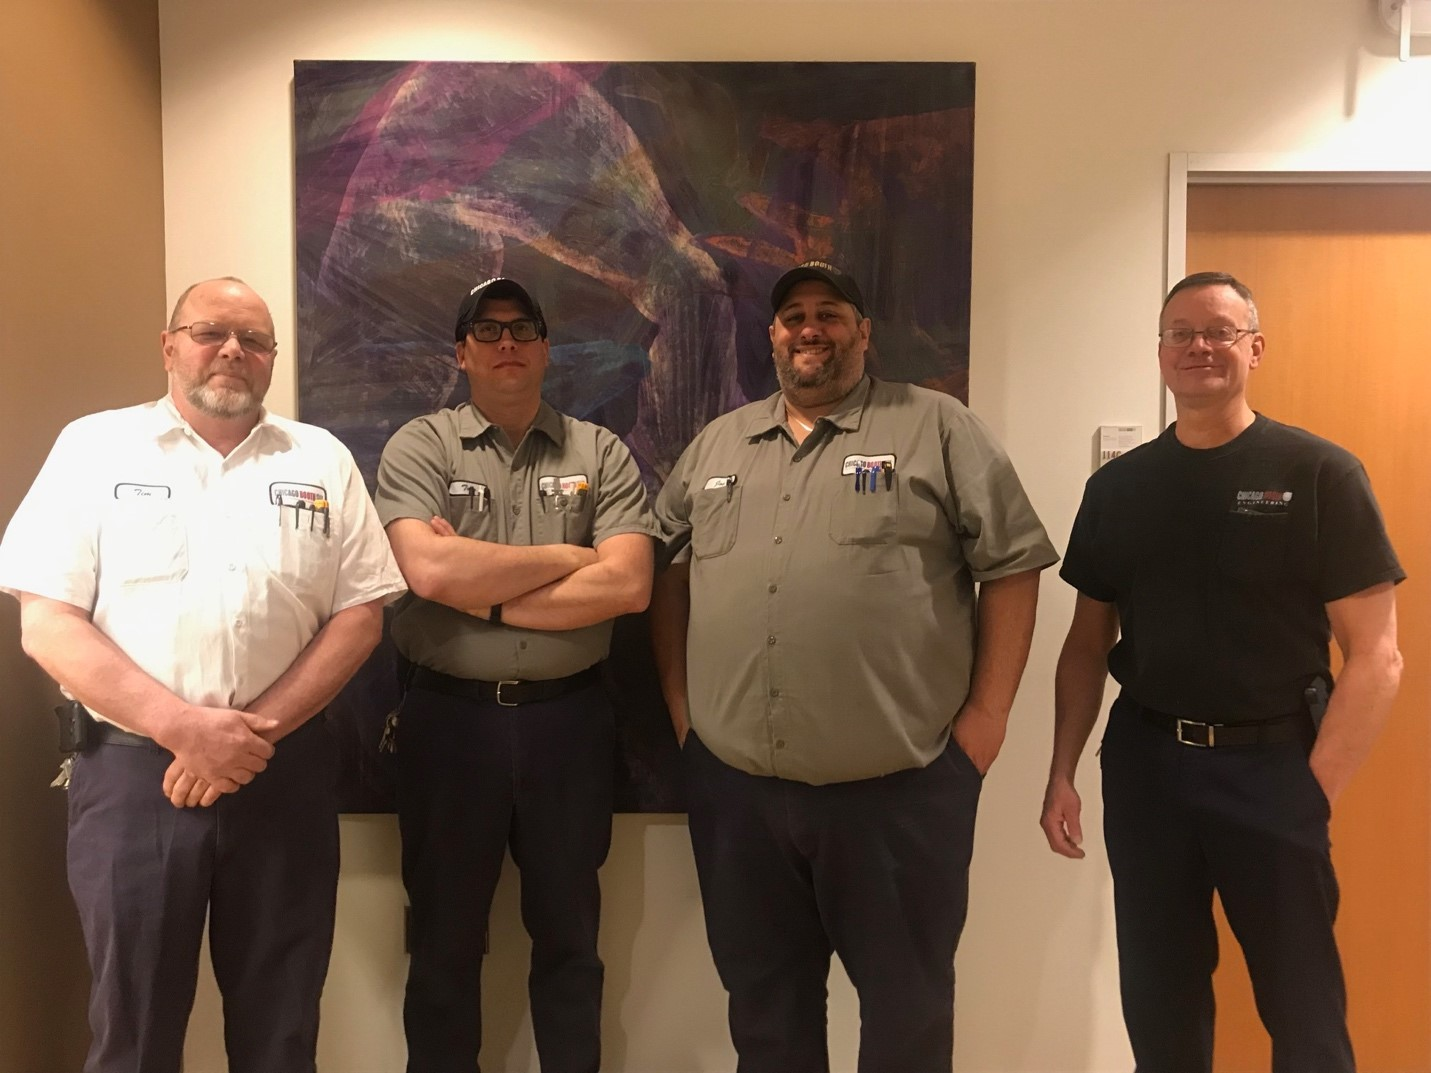 From left to right: Tim Hinko, Tom Wright, Joe Alesia, and Marty Stauffer are the building engineers who keep Harper Center running smoothly